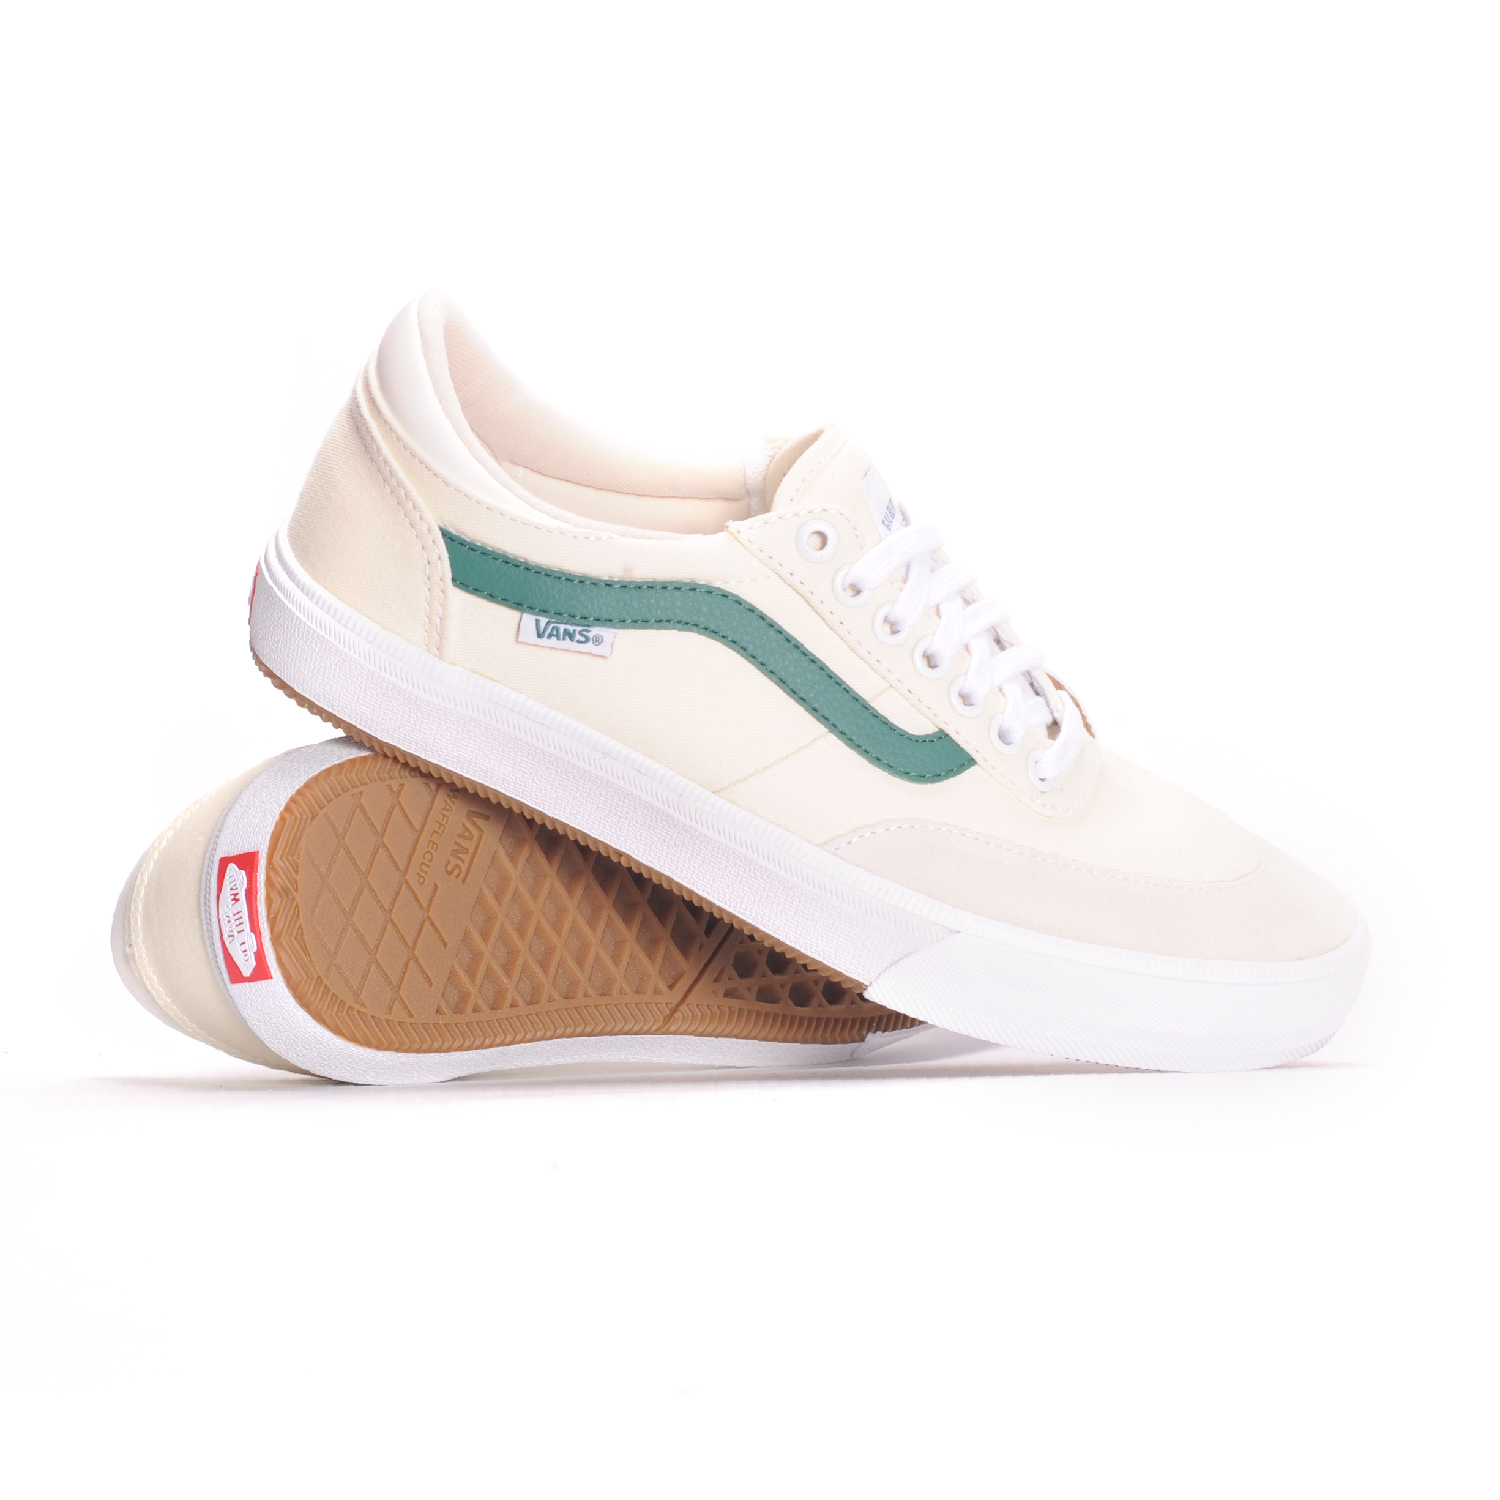 Vans Gilbert Crockett 2 Pro (Center Court Classic White Evergreen) Men s Skate  Shoes 4046b0b53